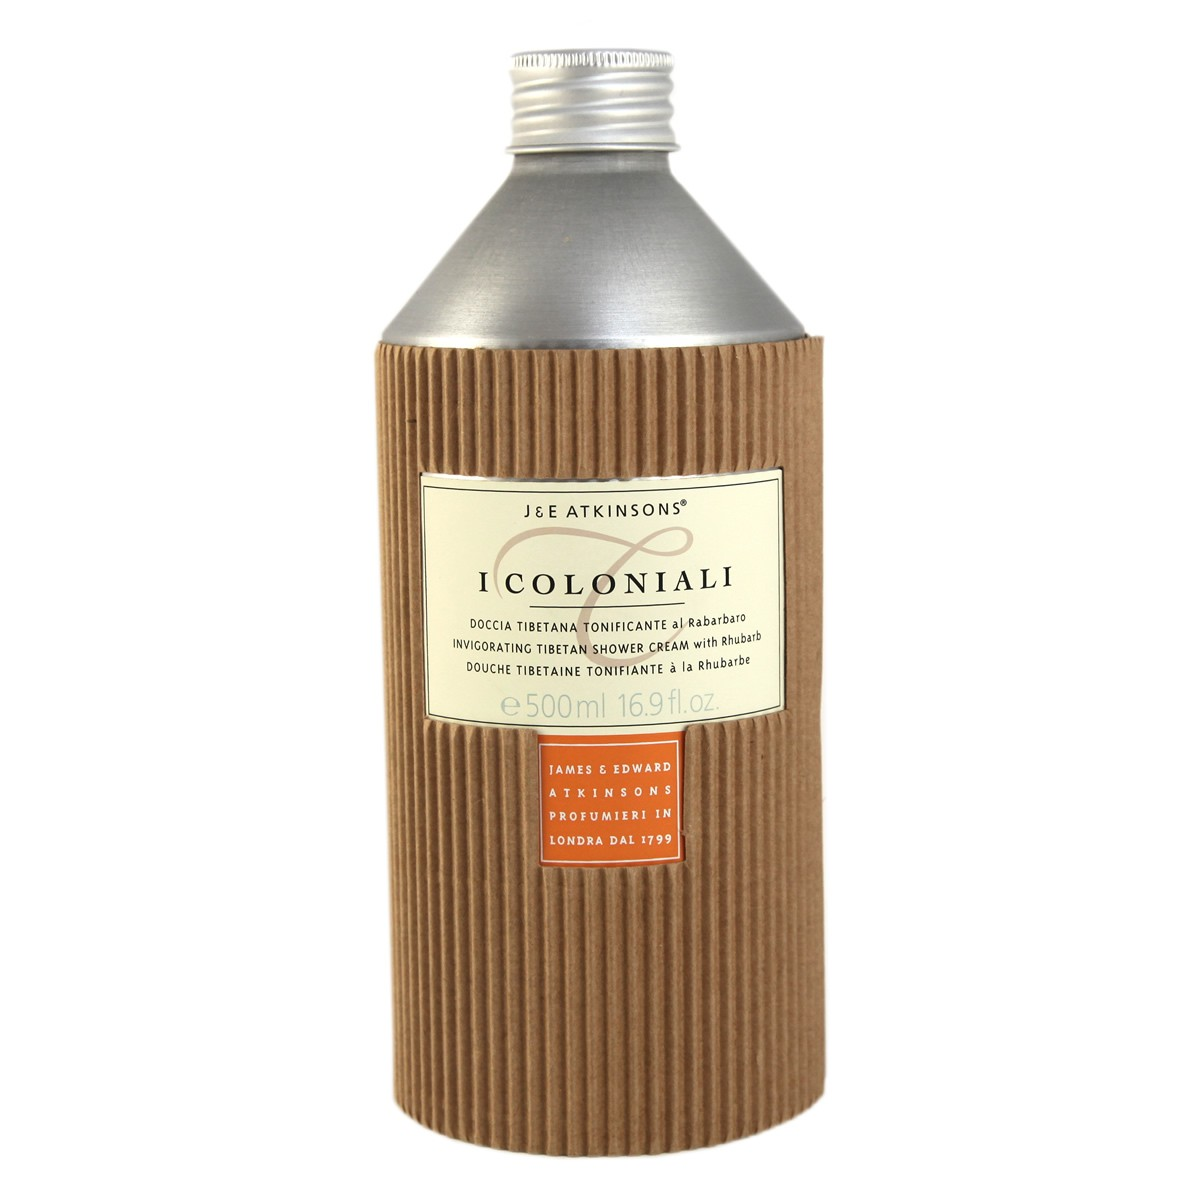 I Coloniali Invigorating Tibetan Shower Cream with Rhubarb